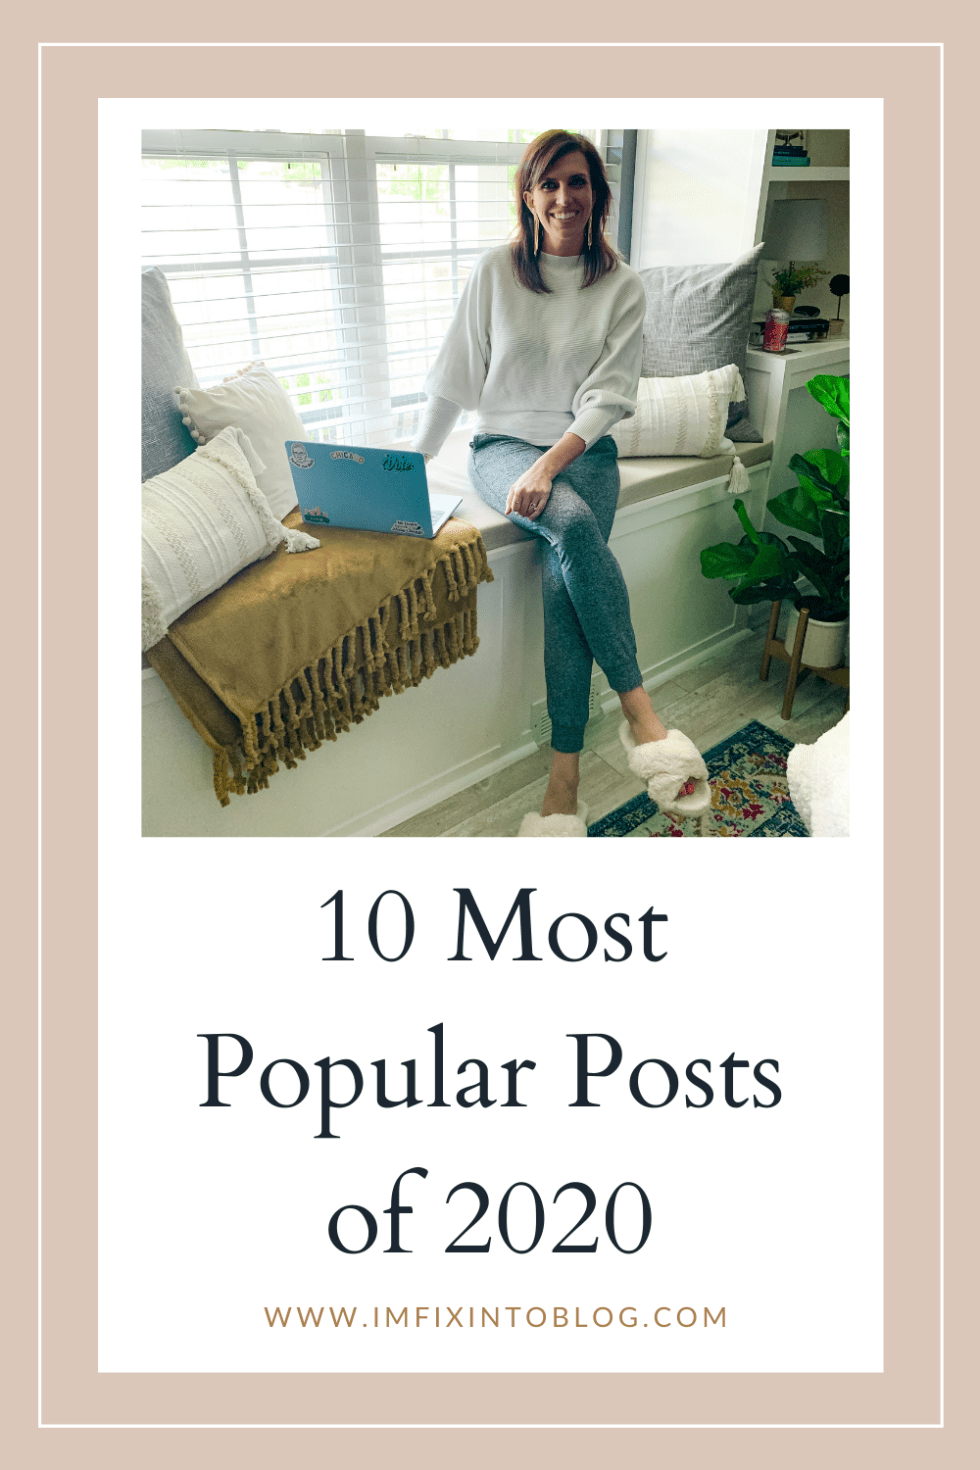 Most Popular Posts of 2020 - I'm Fixin' To - @imfixintoblog |Most Popular Posts by popular NC lifestyle blog, I'm Fixin' To: Pinterest image of a woman sitting next to her laptop on her window seat.